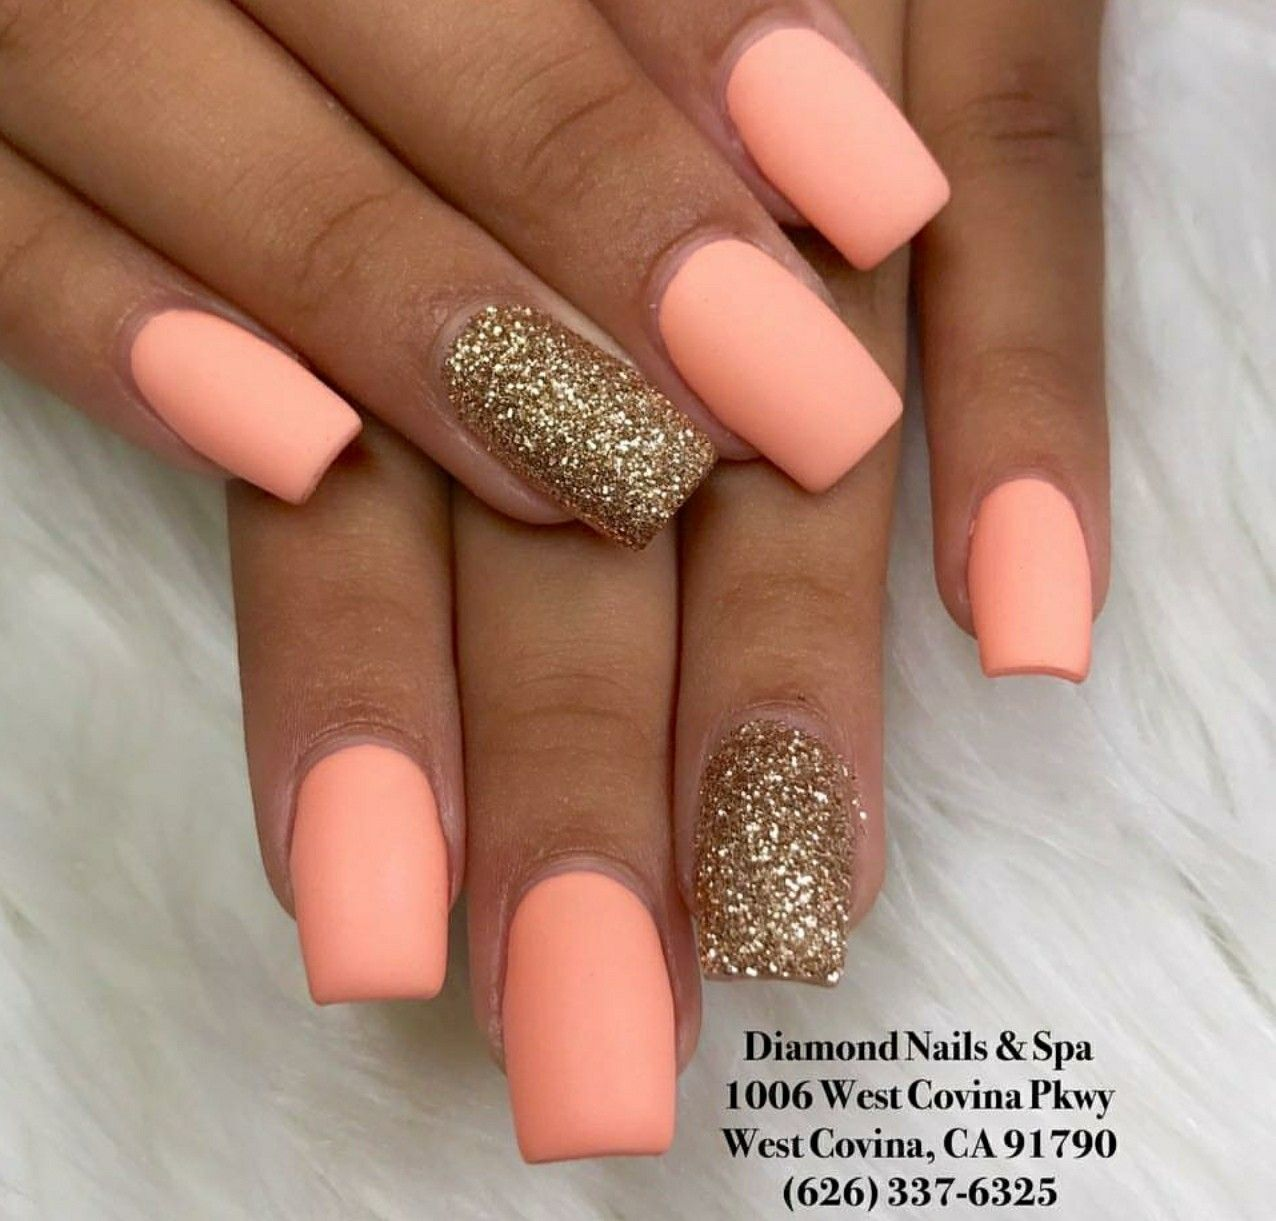 Short Square Nails Matte Nails Gold Glitter Nails Acrylic Nails